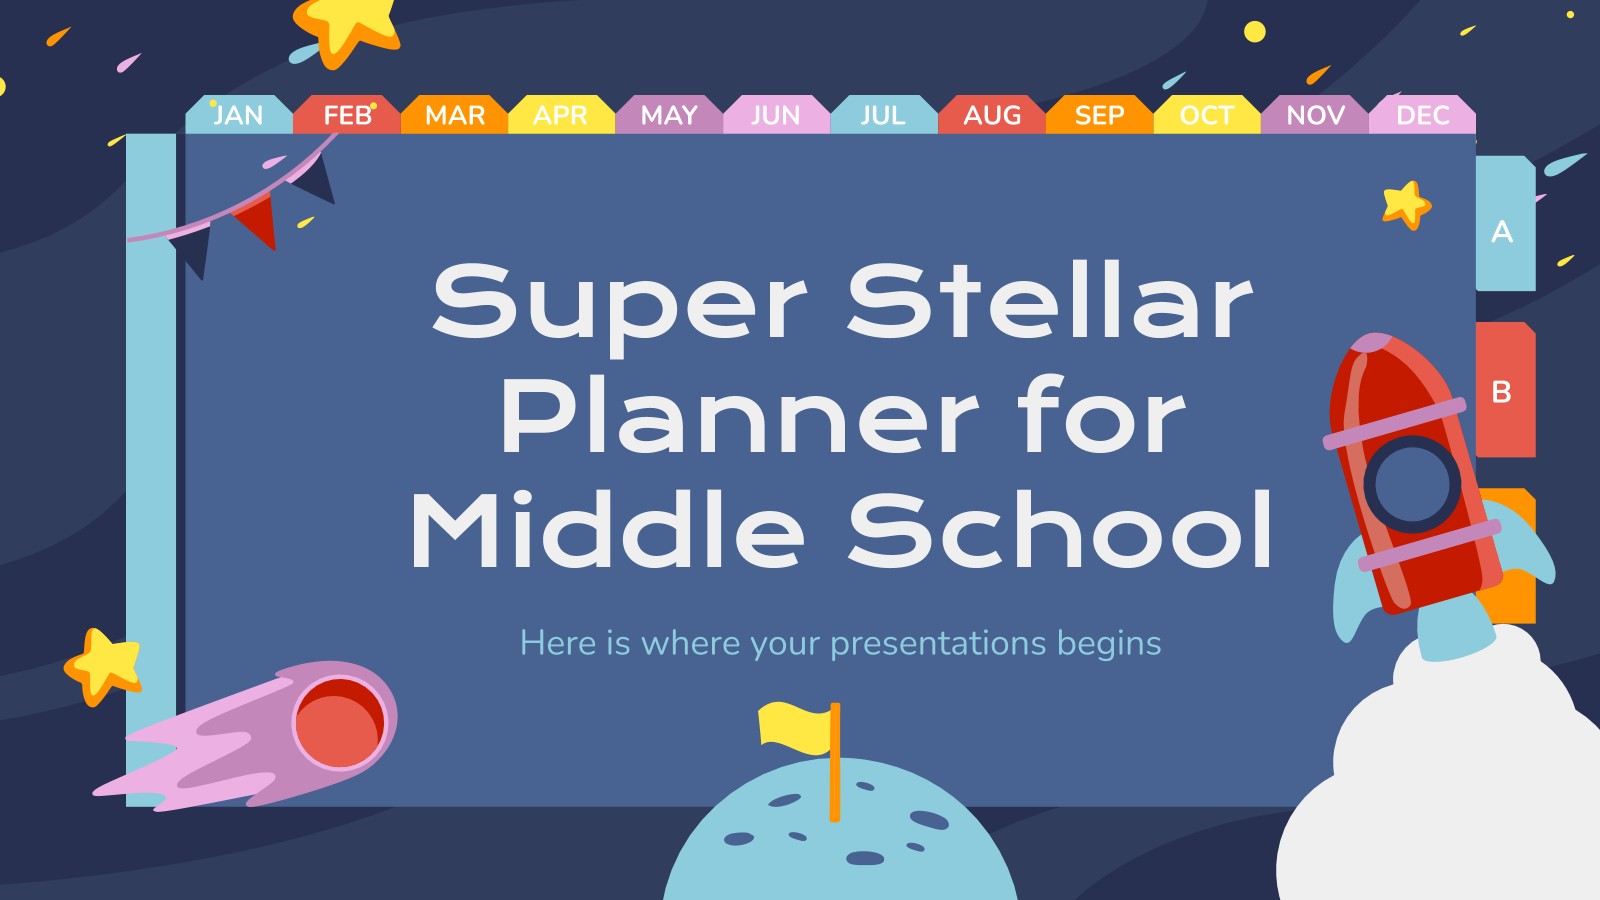 Super Stellar Planner for Middle School presentation template